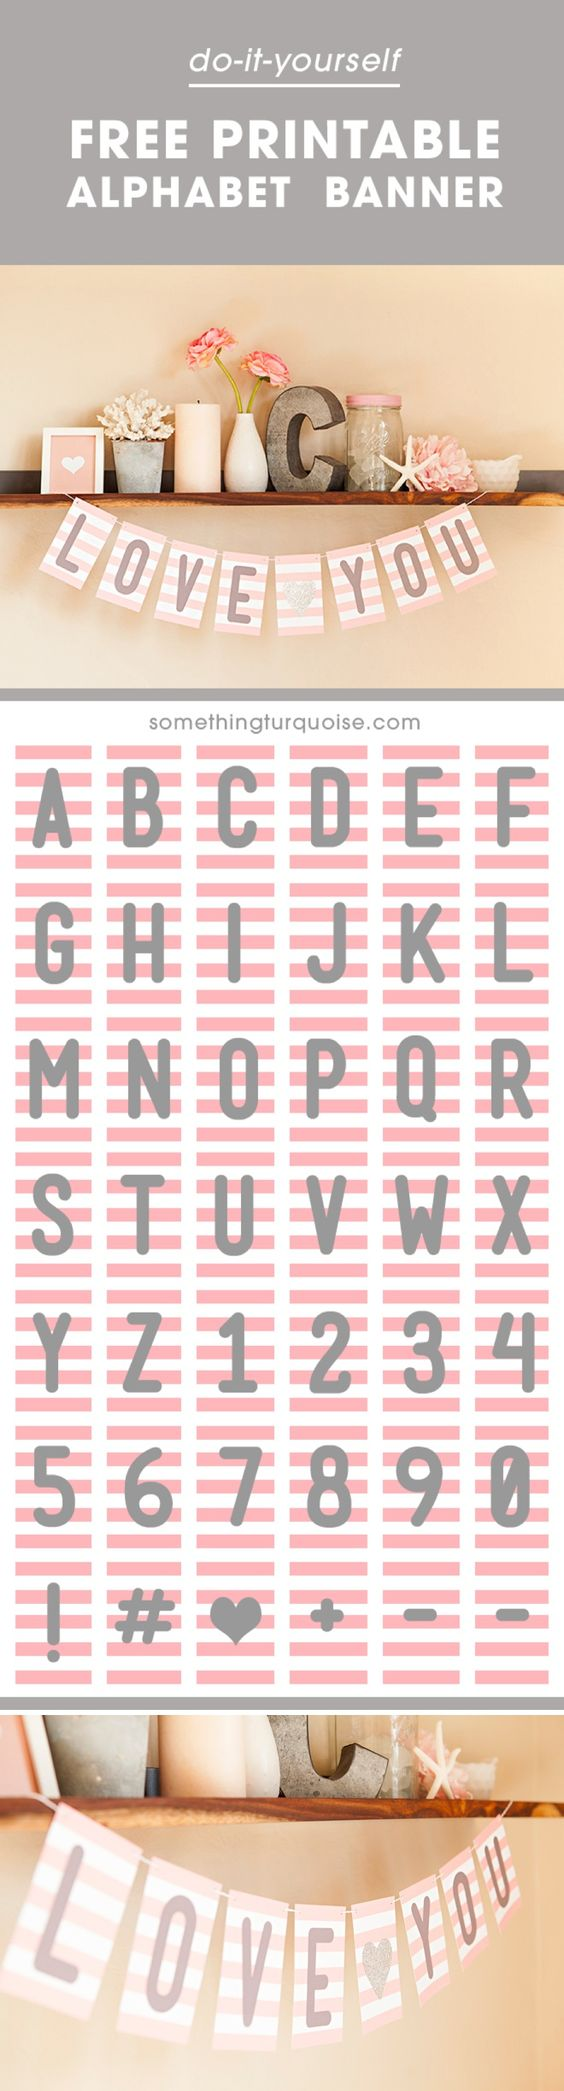 Adorable FREE Printable Alphabet Banner, You Can Make It Say Anything You  Want! #craftywithcanon